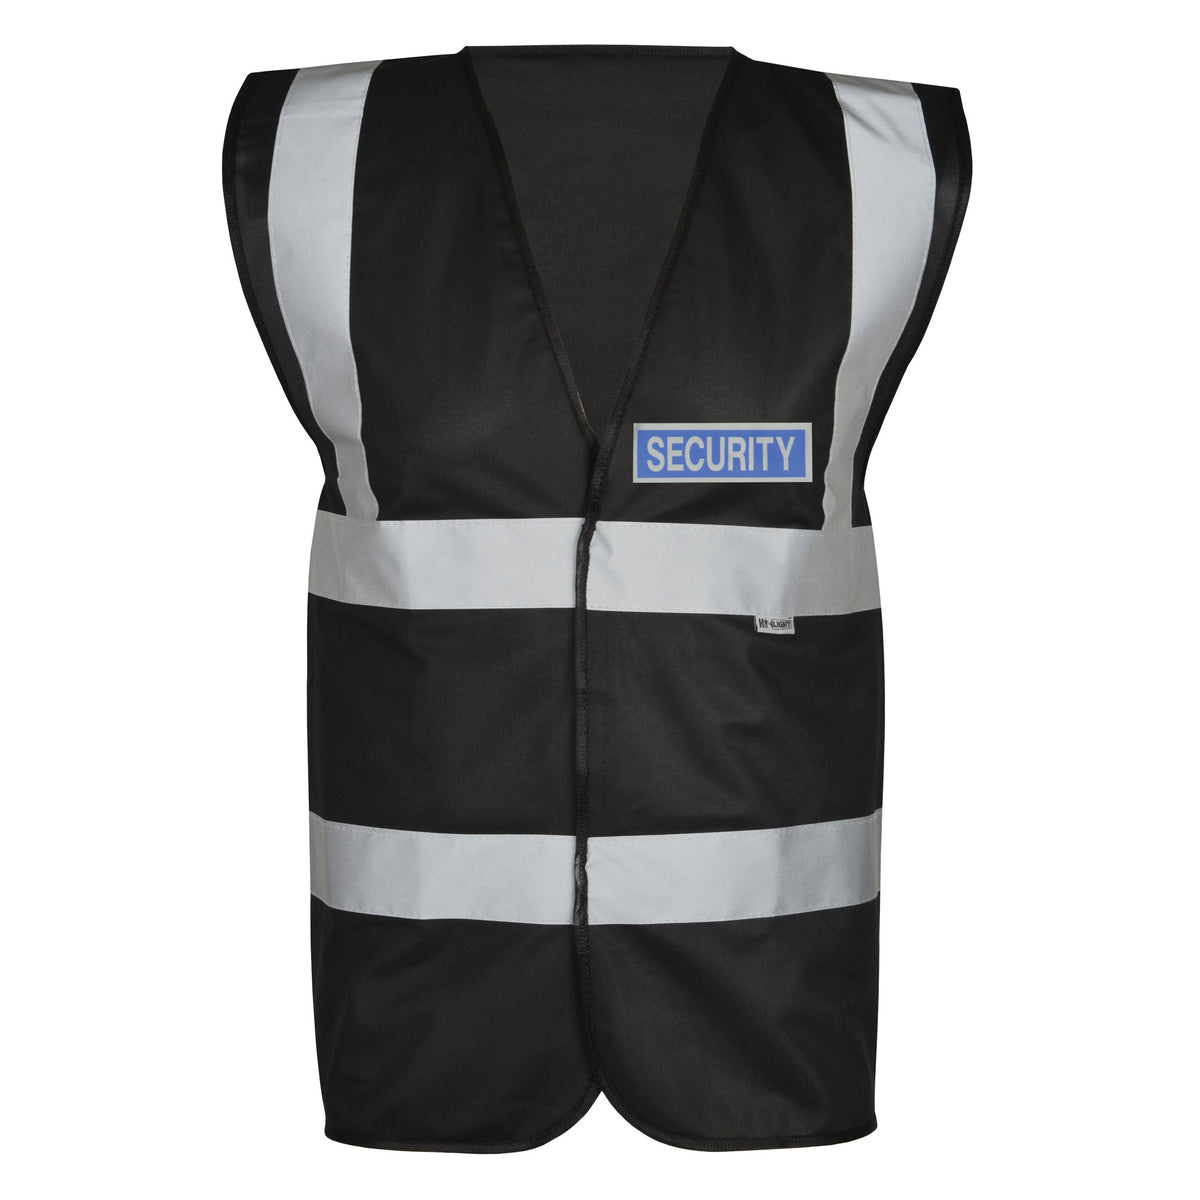 Enhanced Visibility Vest - peterdrew.com  - 7